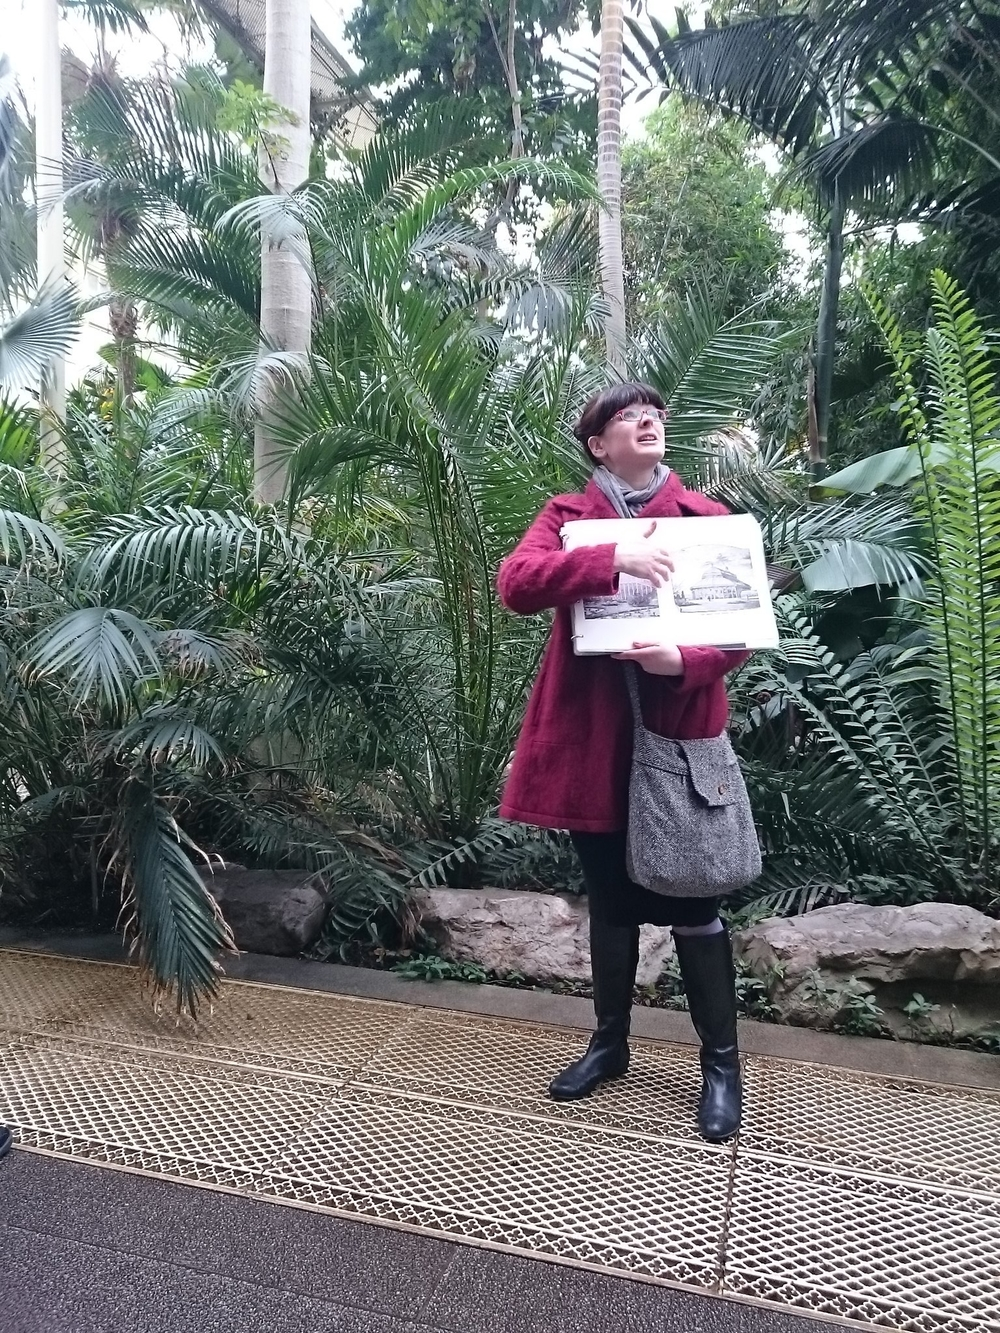 Illustrated Walks in the Botanic Gardens